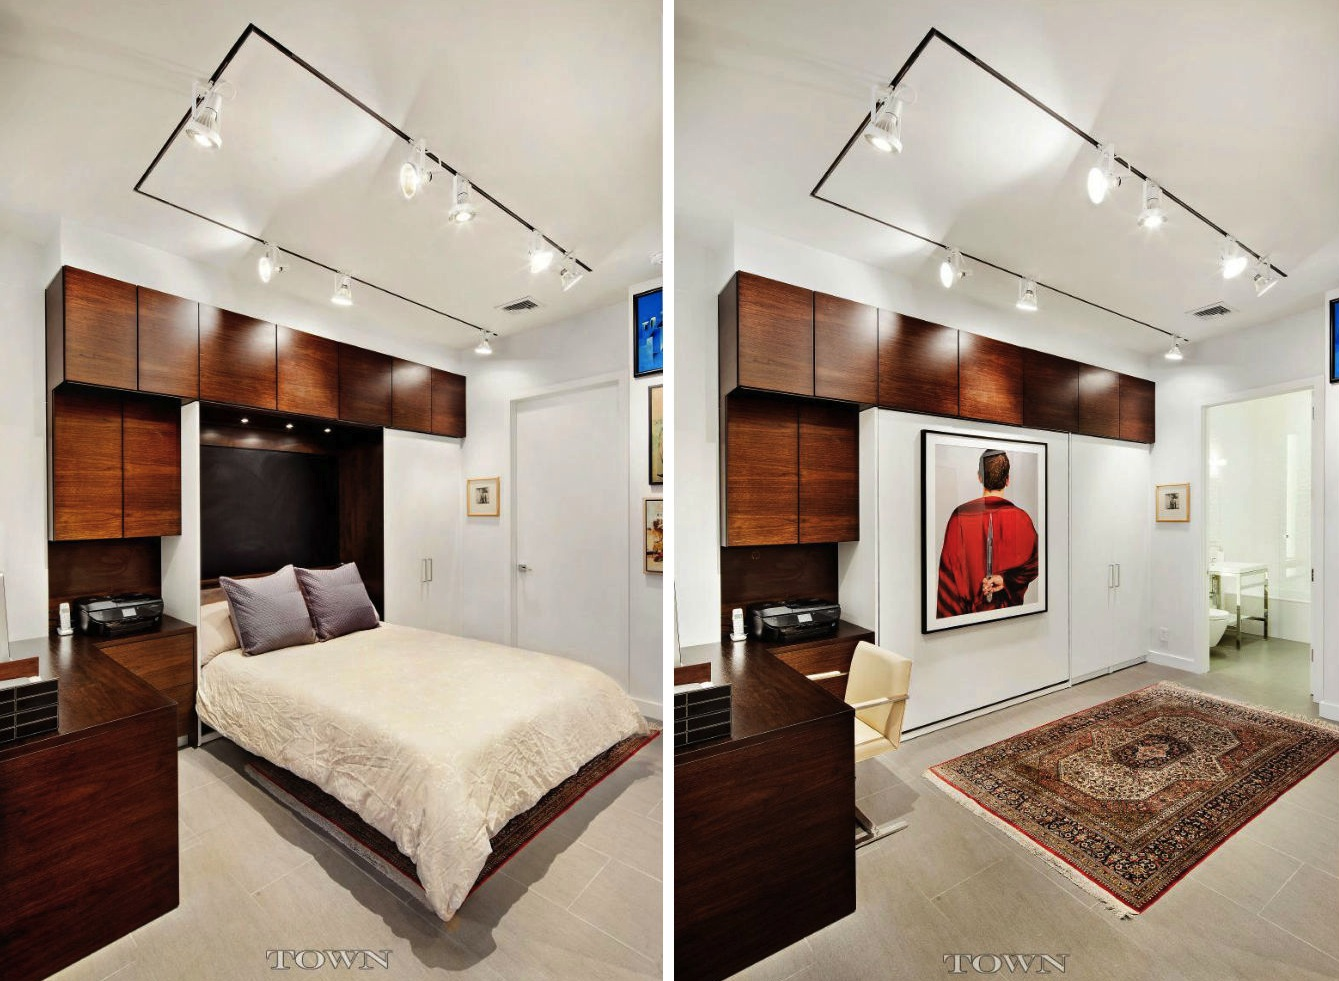 143 west 20th street, chelsea, guest bedroom